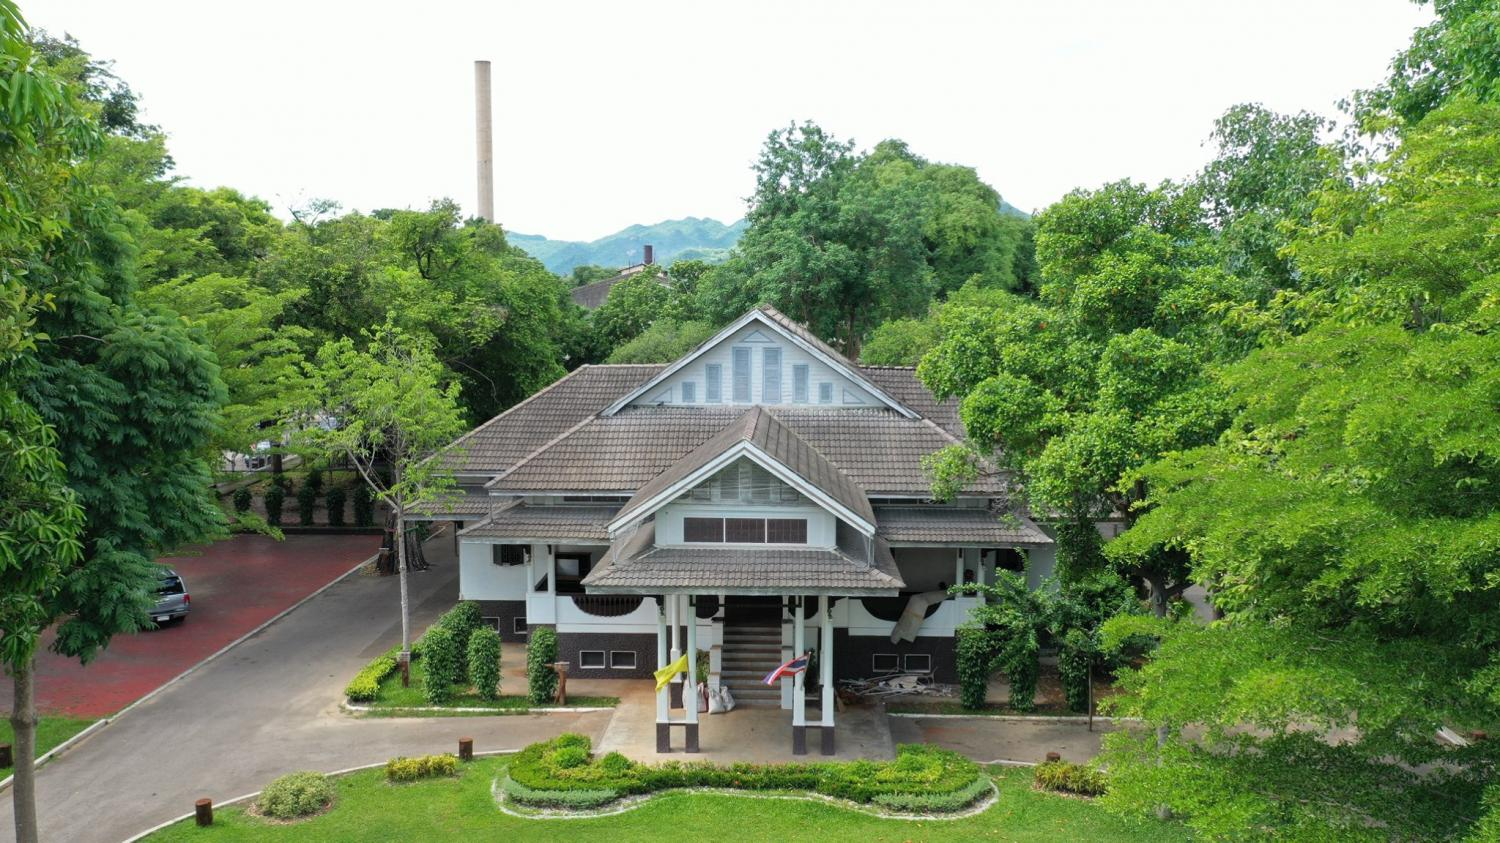 New lease on life: The old provincial governor's residence, 'Juan Phu Wah Kao' in Tambon Ban Nua of Muang district of Kanchanaburi province, will be developed into a local museum.